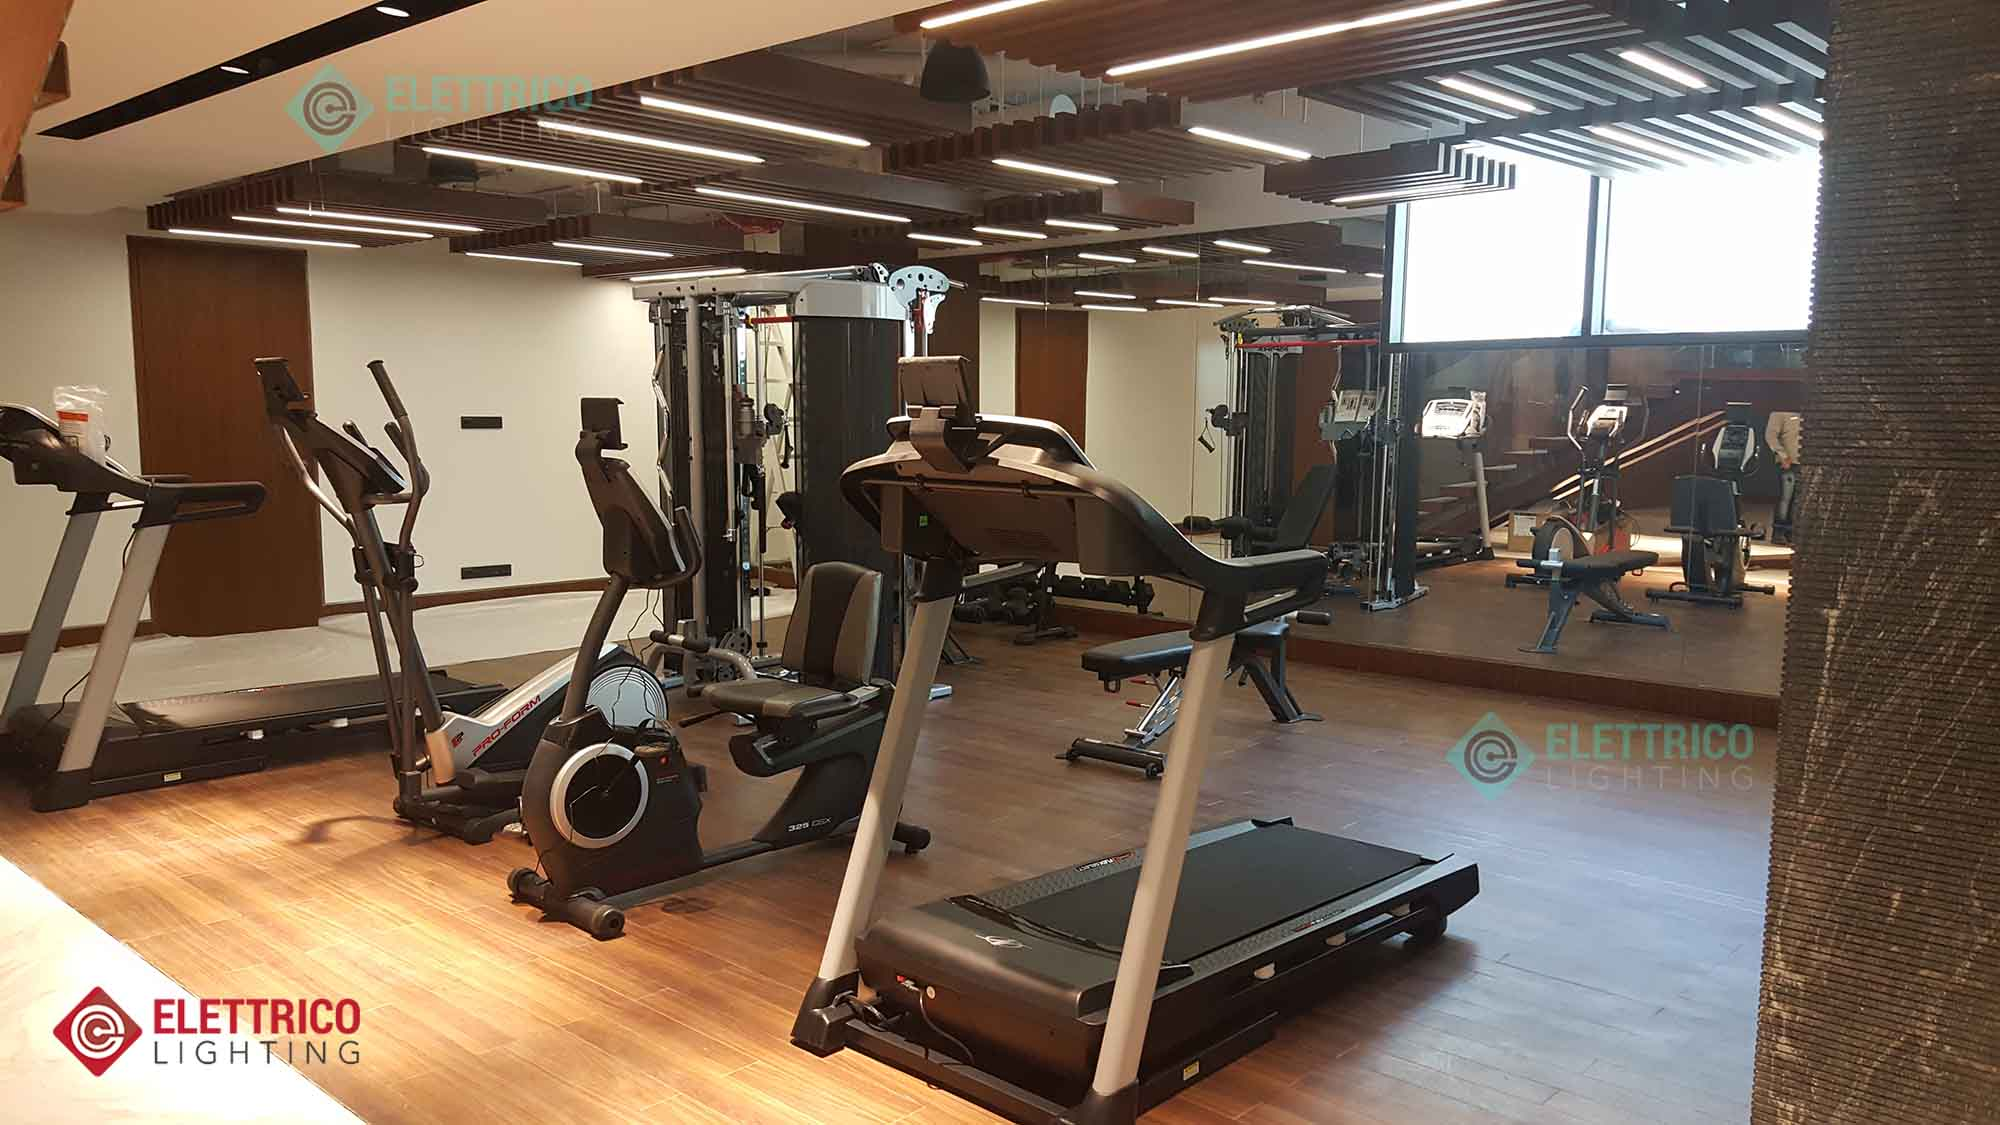 Commercial gym lighting for fitness rooms